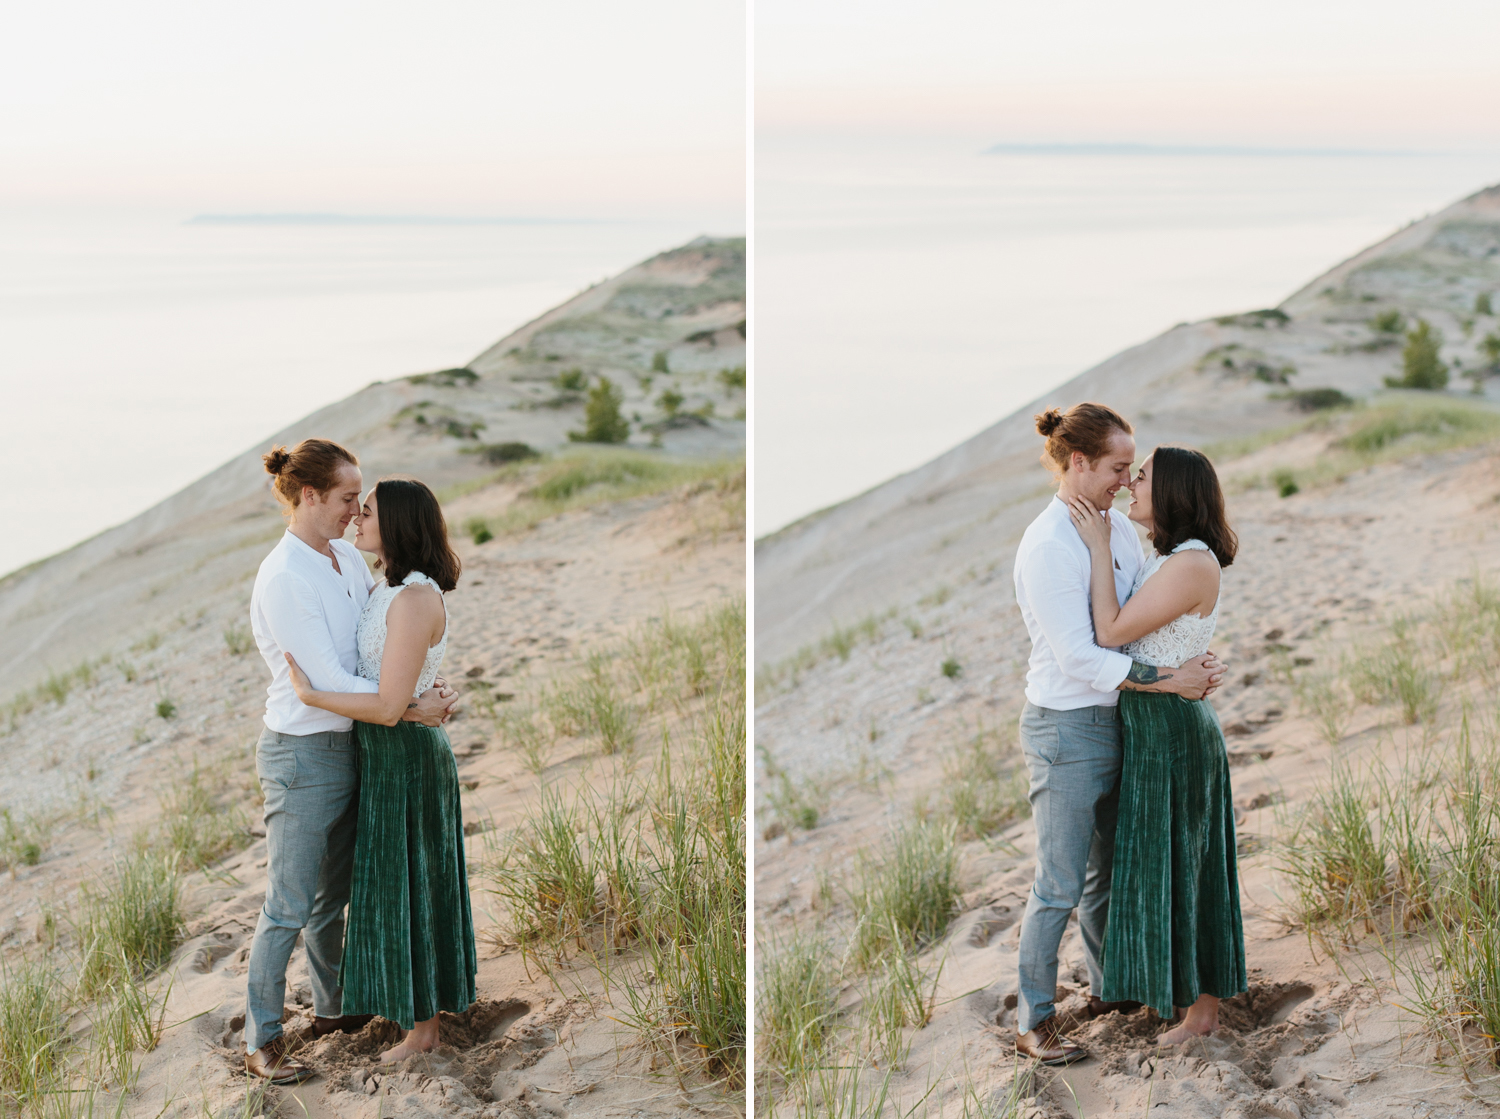 Sleeping Bear Dunes Elopement Photography Northern Michigan Wedding Photographer Mae Stier-041.jpg